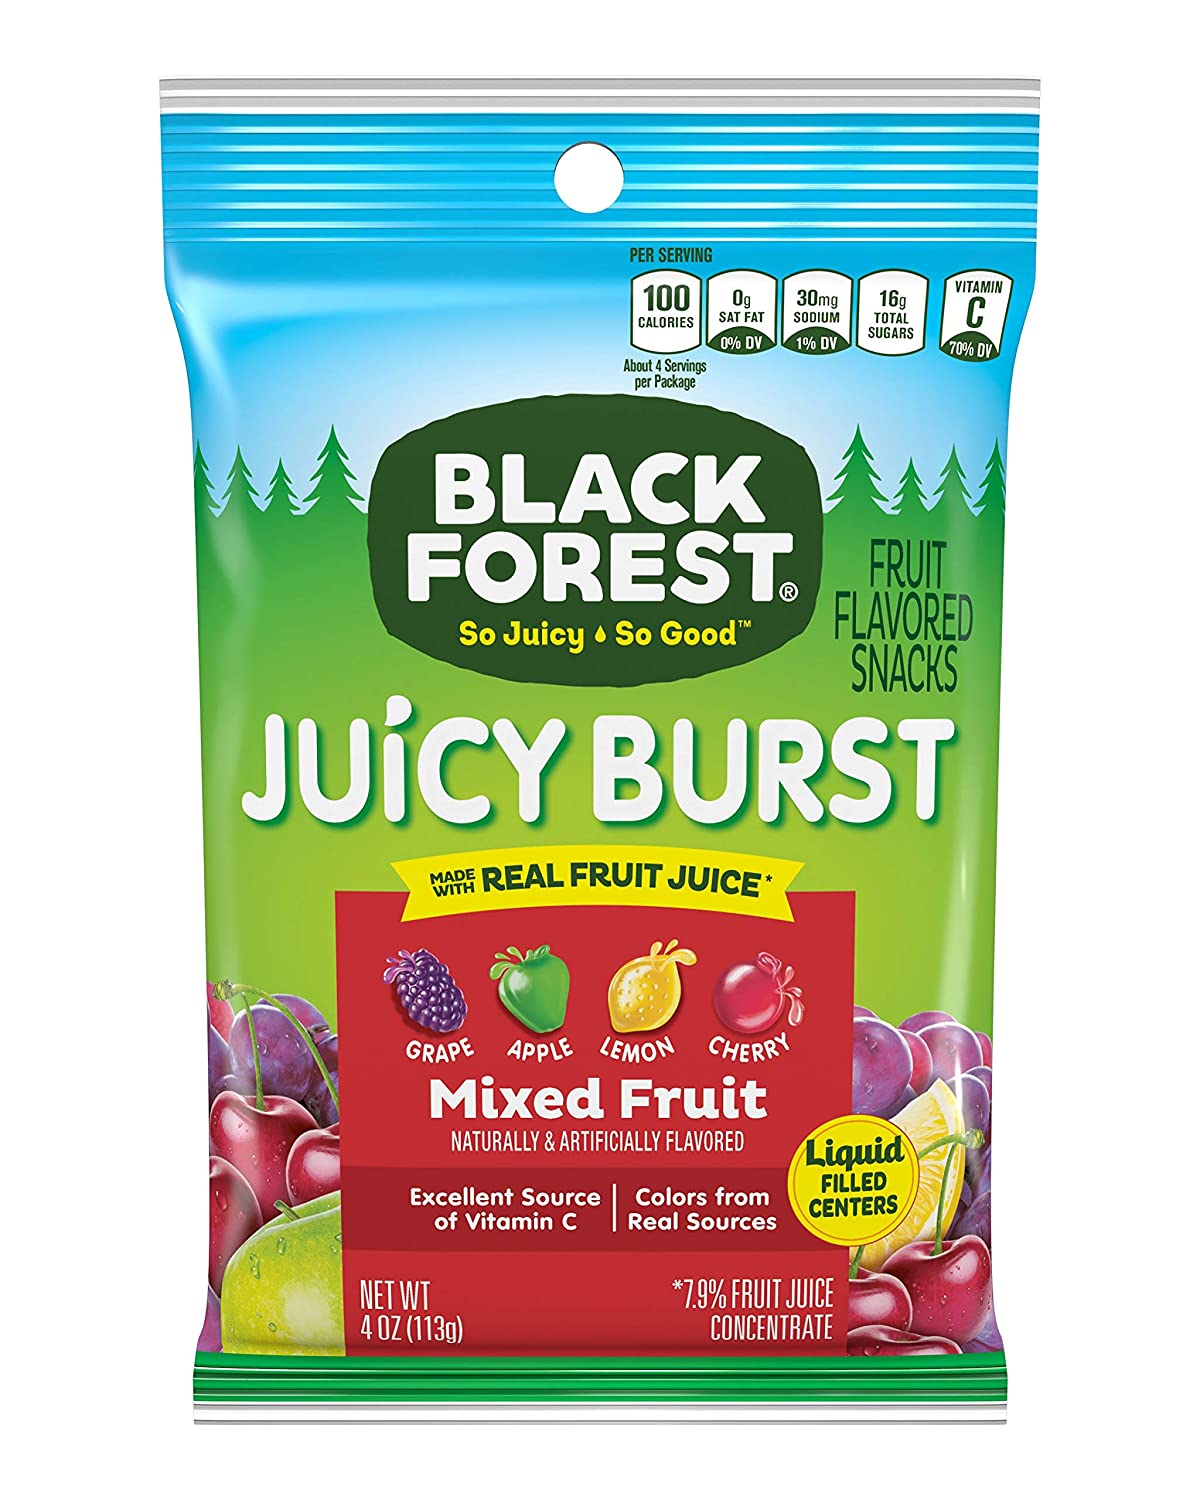 Black Forest Juicy Burst Fruit Snacks, Mixed Fruit, 4 Ounce, Pack of 12